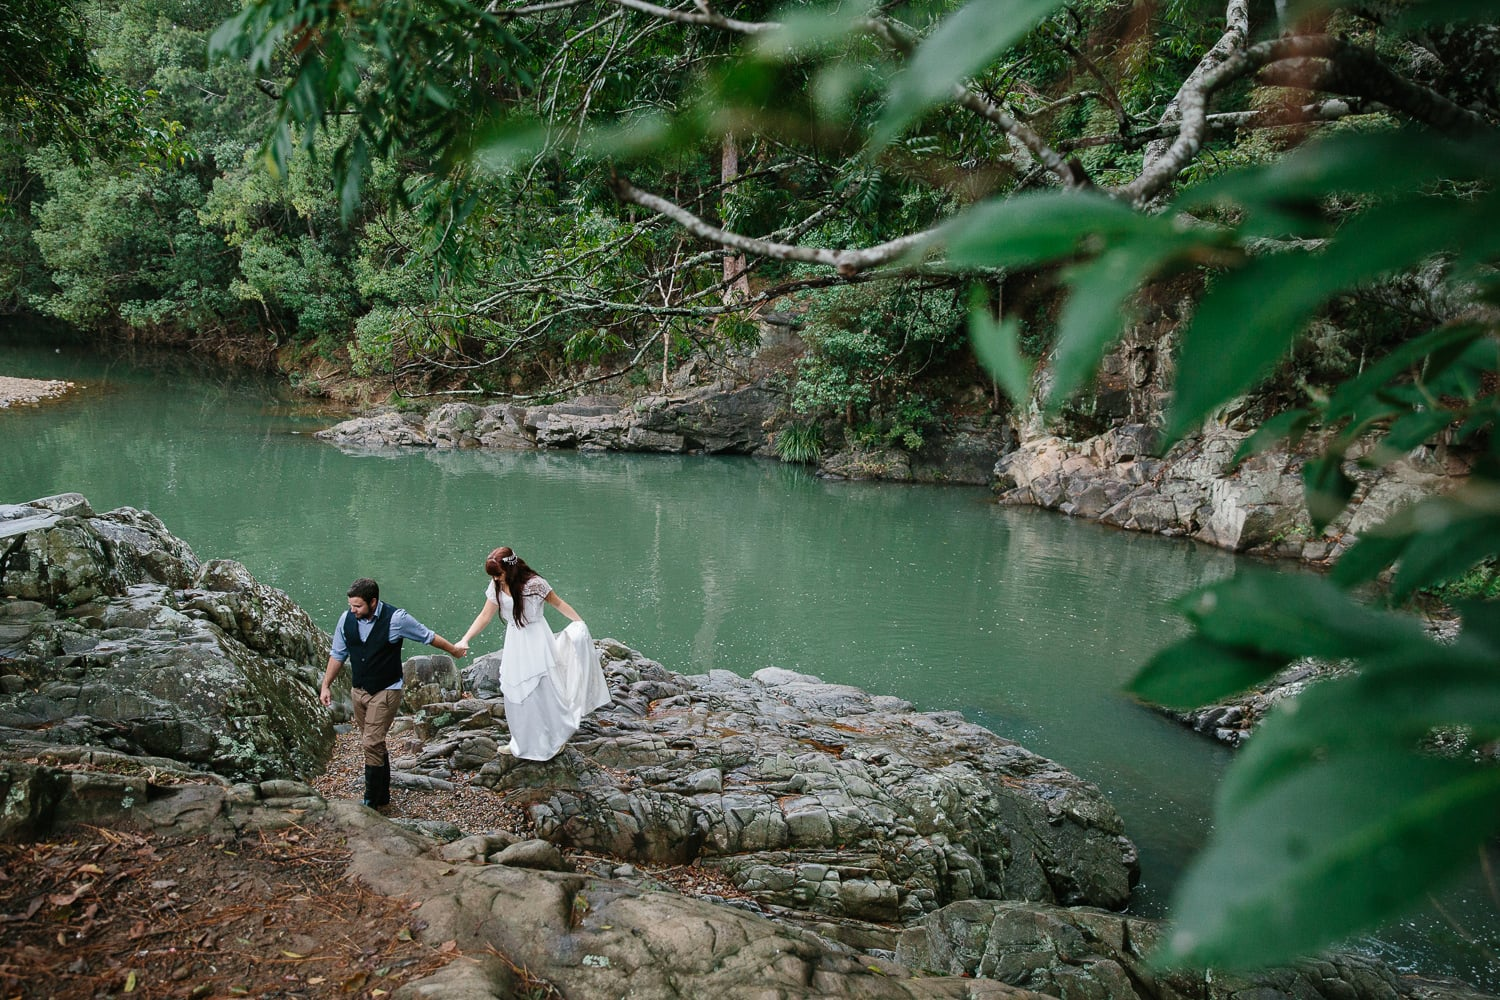 Elopement photographer documentary storytelling style Central Coast destination